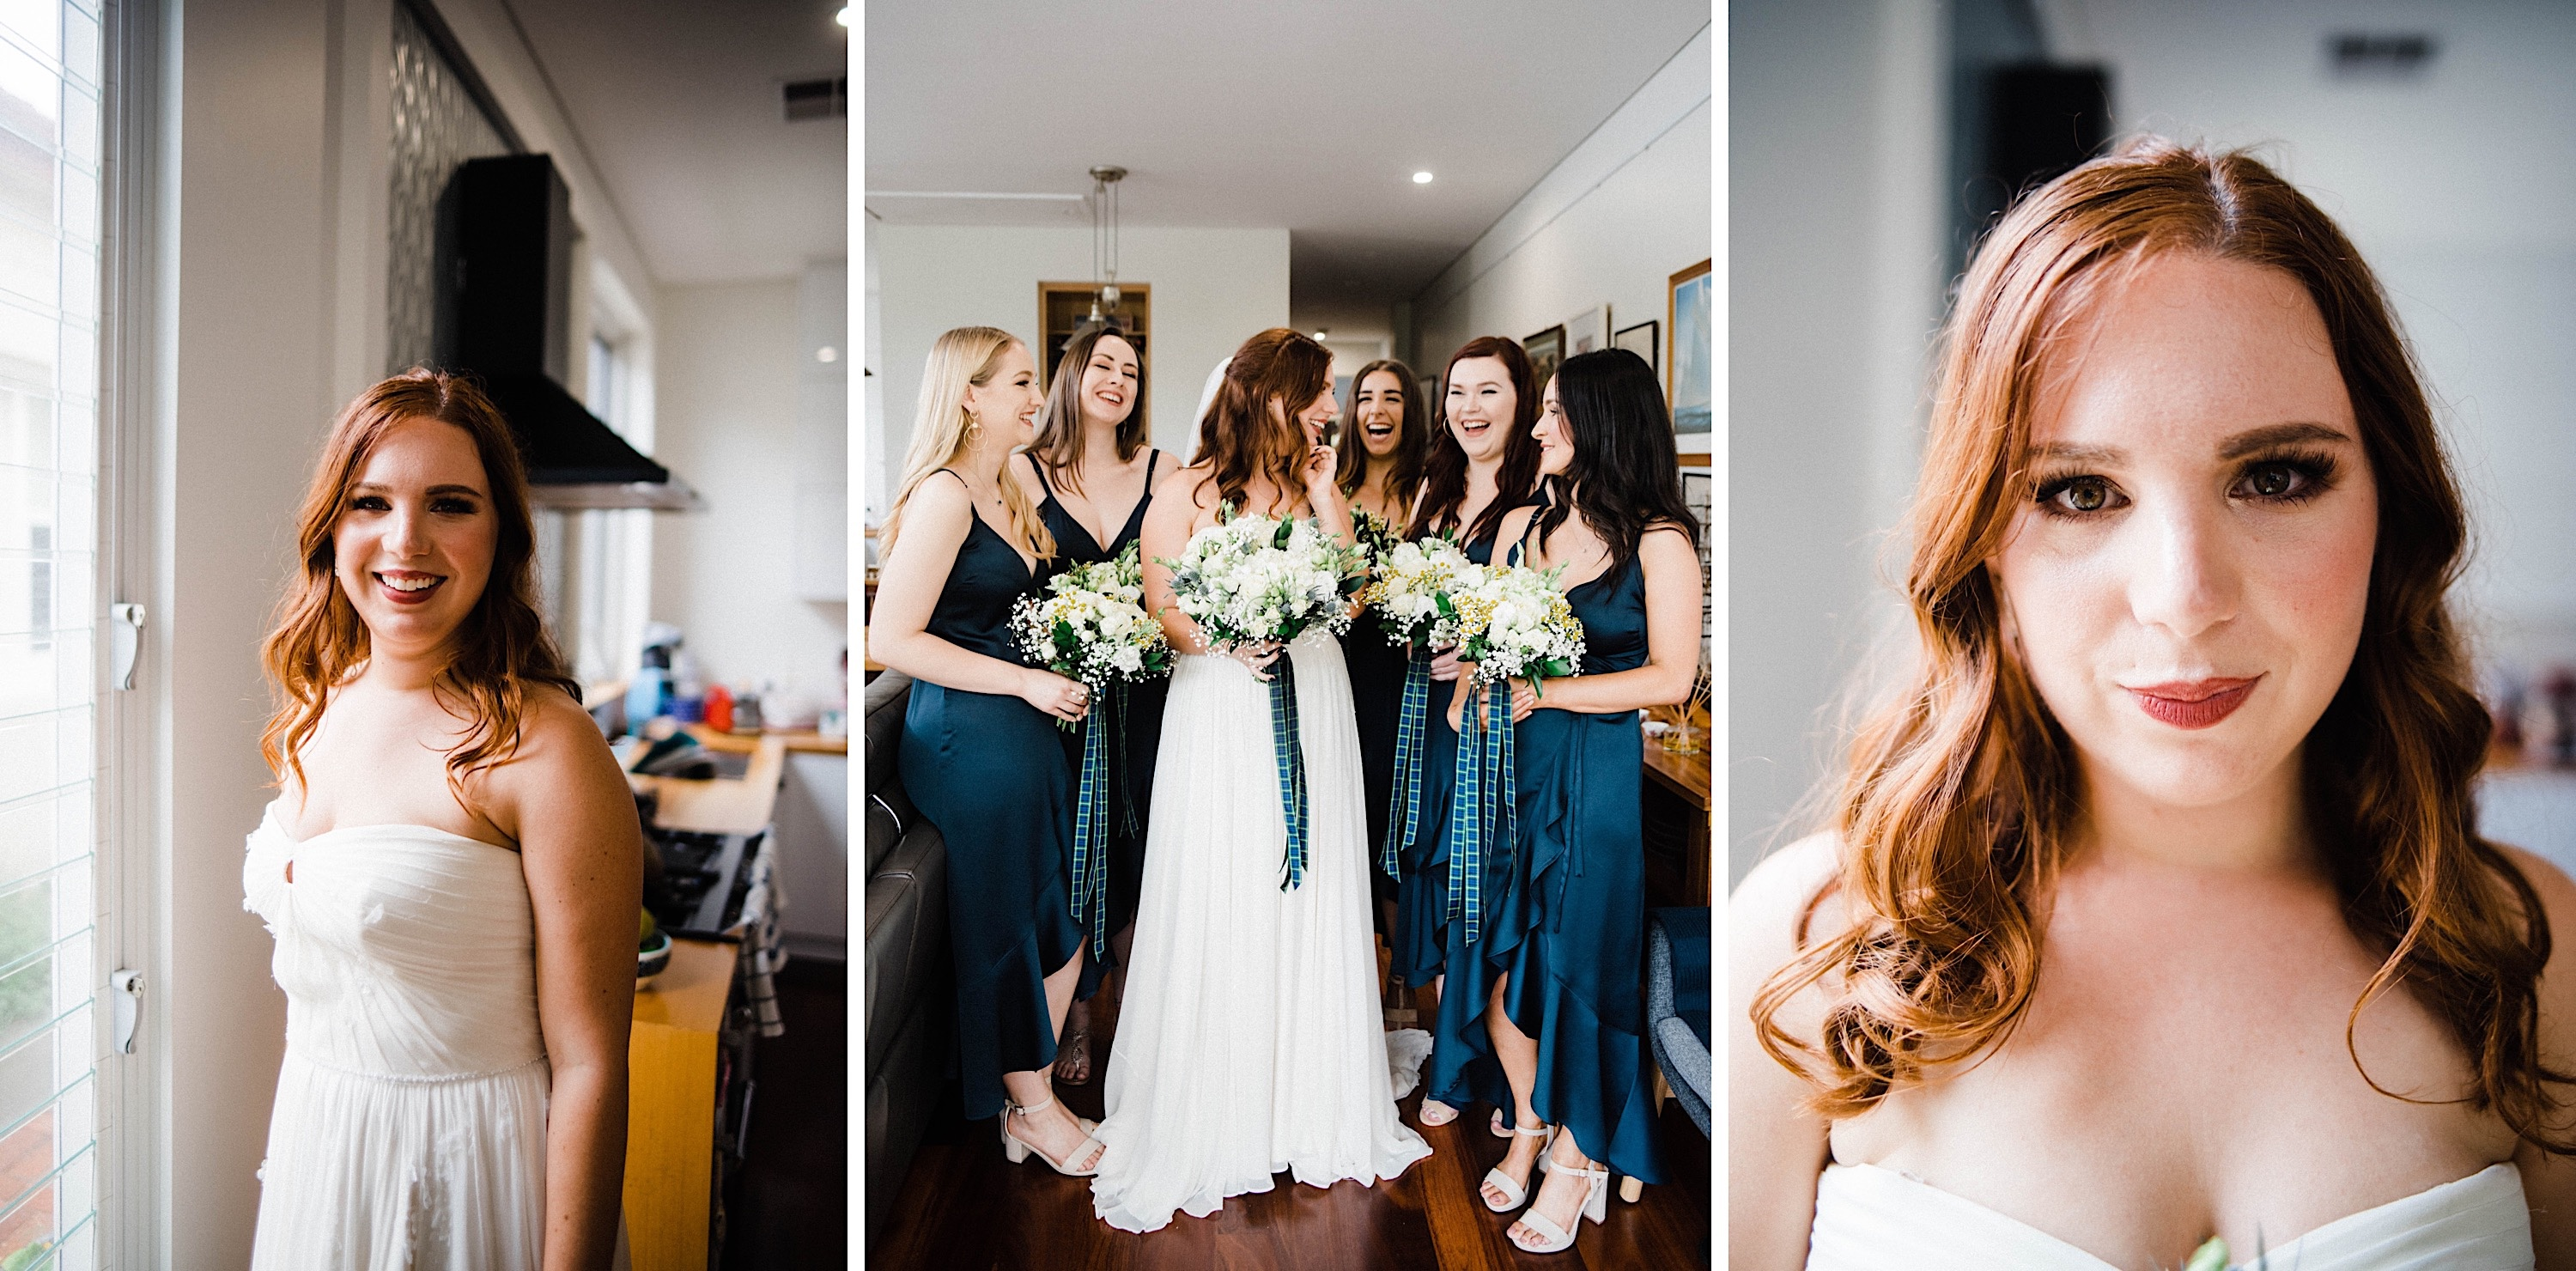 Three images from the bride's prep for a Sustainable Backyard Wedding. From Left to Right, the bride smiling at the camera, the bride surrounded by her bridesmaid's holding their bouquets with tartan ribbons, and a close-up portrait of the bride.